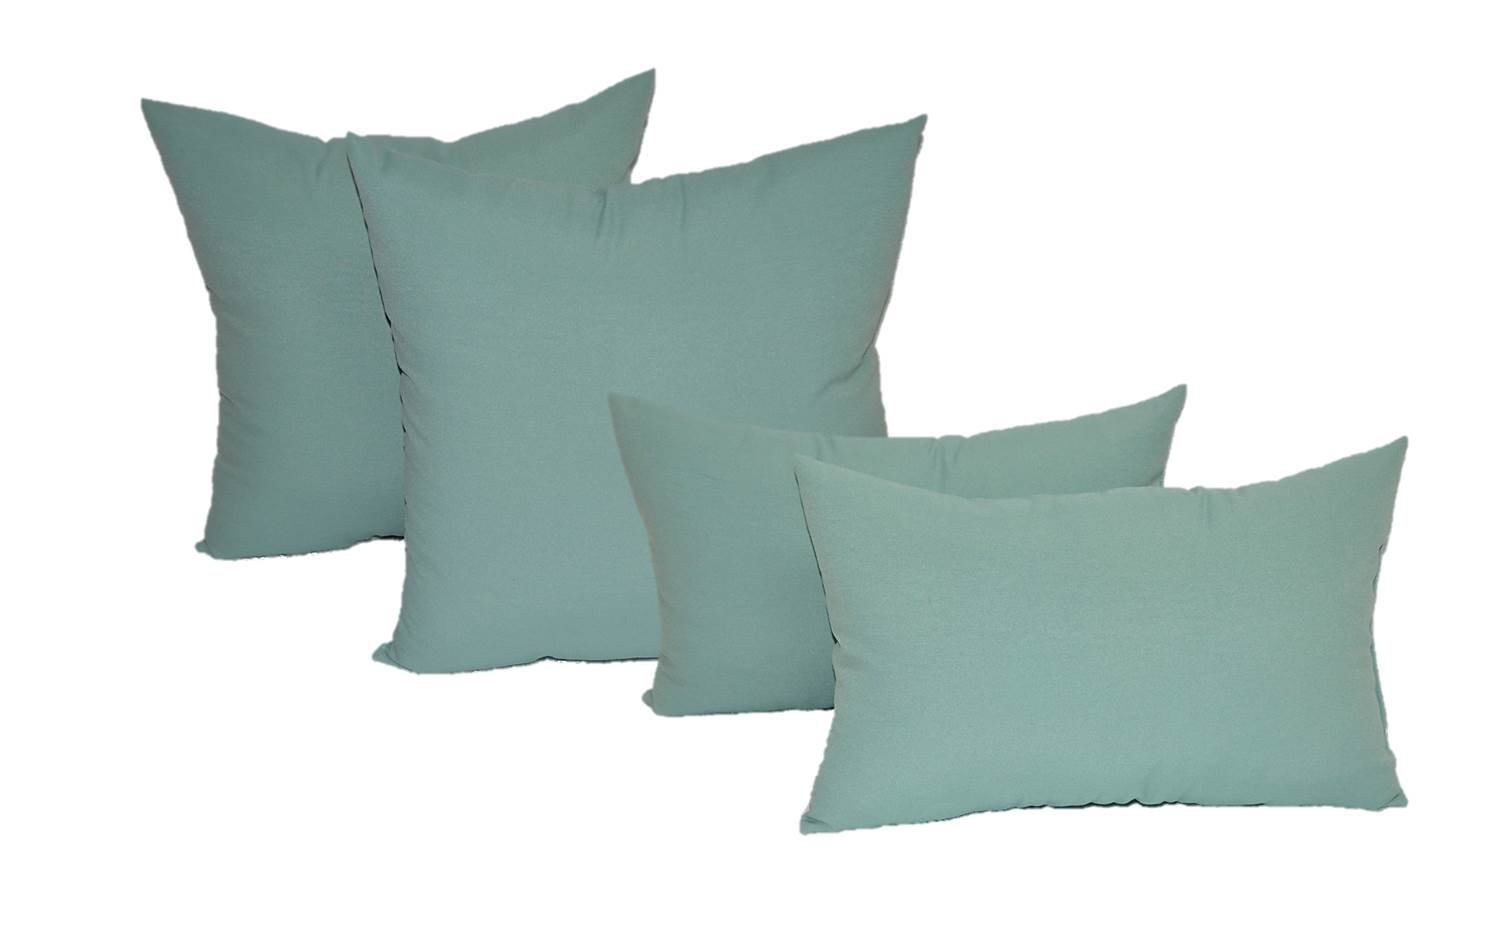 "Set of 4 Indoor / Outdoor Pillows - 20"" Solid Aqua / Spa Square Throw Pillows & Rectangle / Lumbar Decorative Throw Pillows"